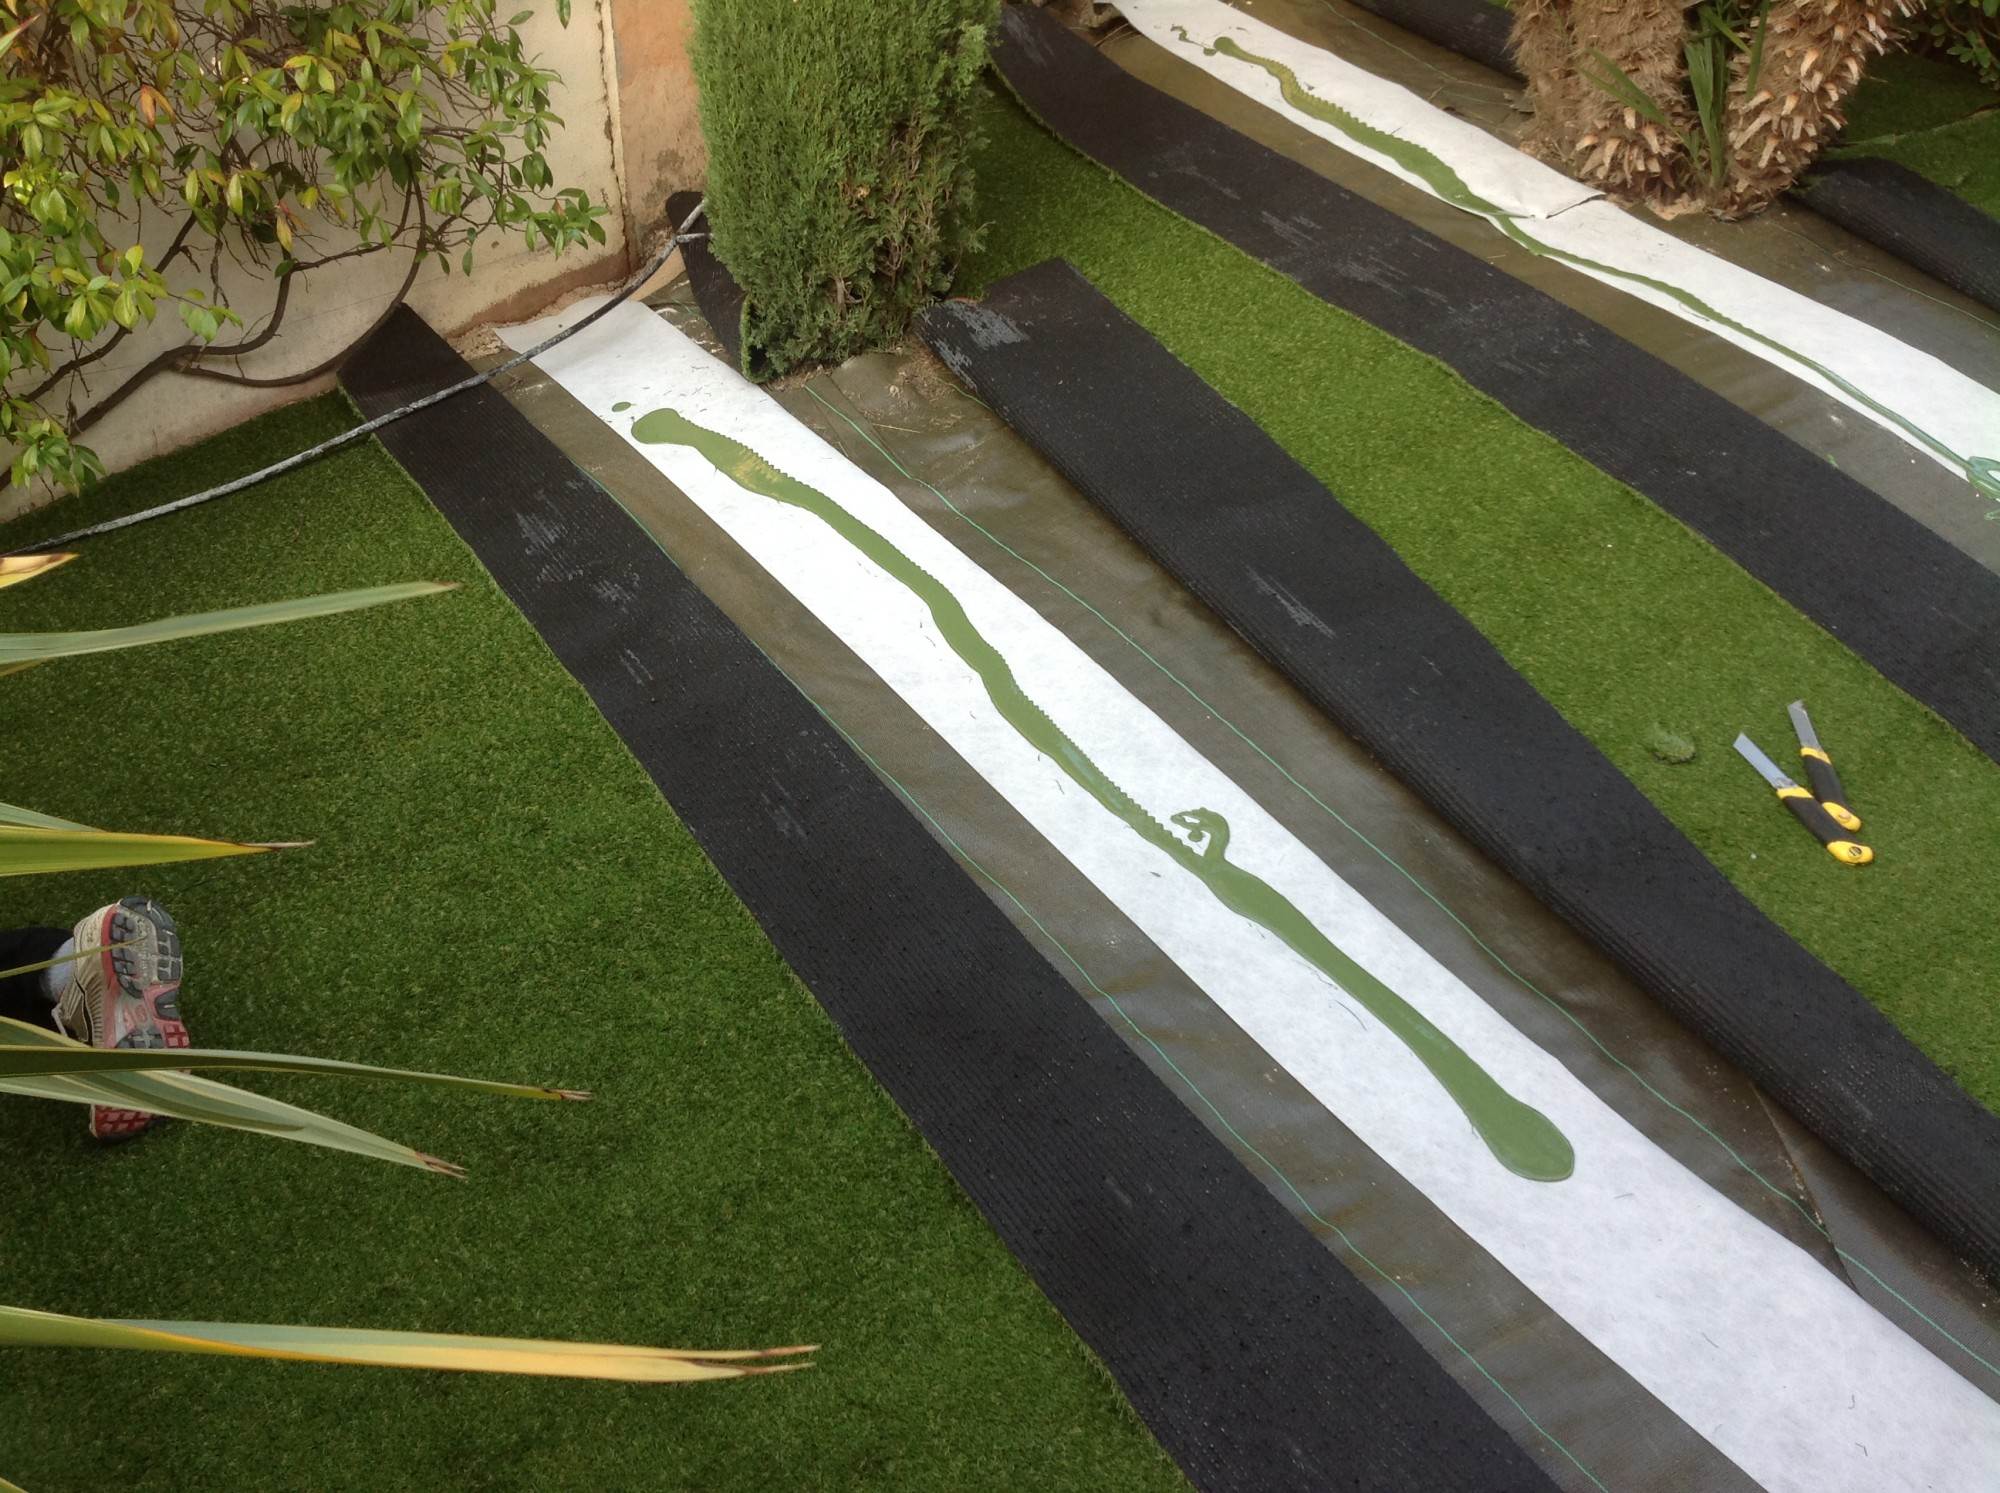 installation d 39 un gazon synth tique pas cher nice gazon et pelouse synth tiques marseille. Black Bedroom Furniture Sets. Home Design Ideas